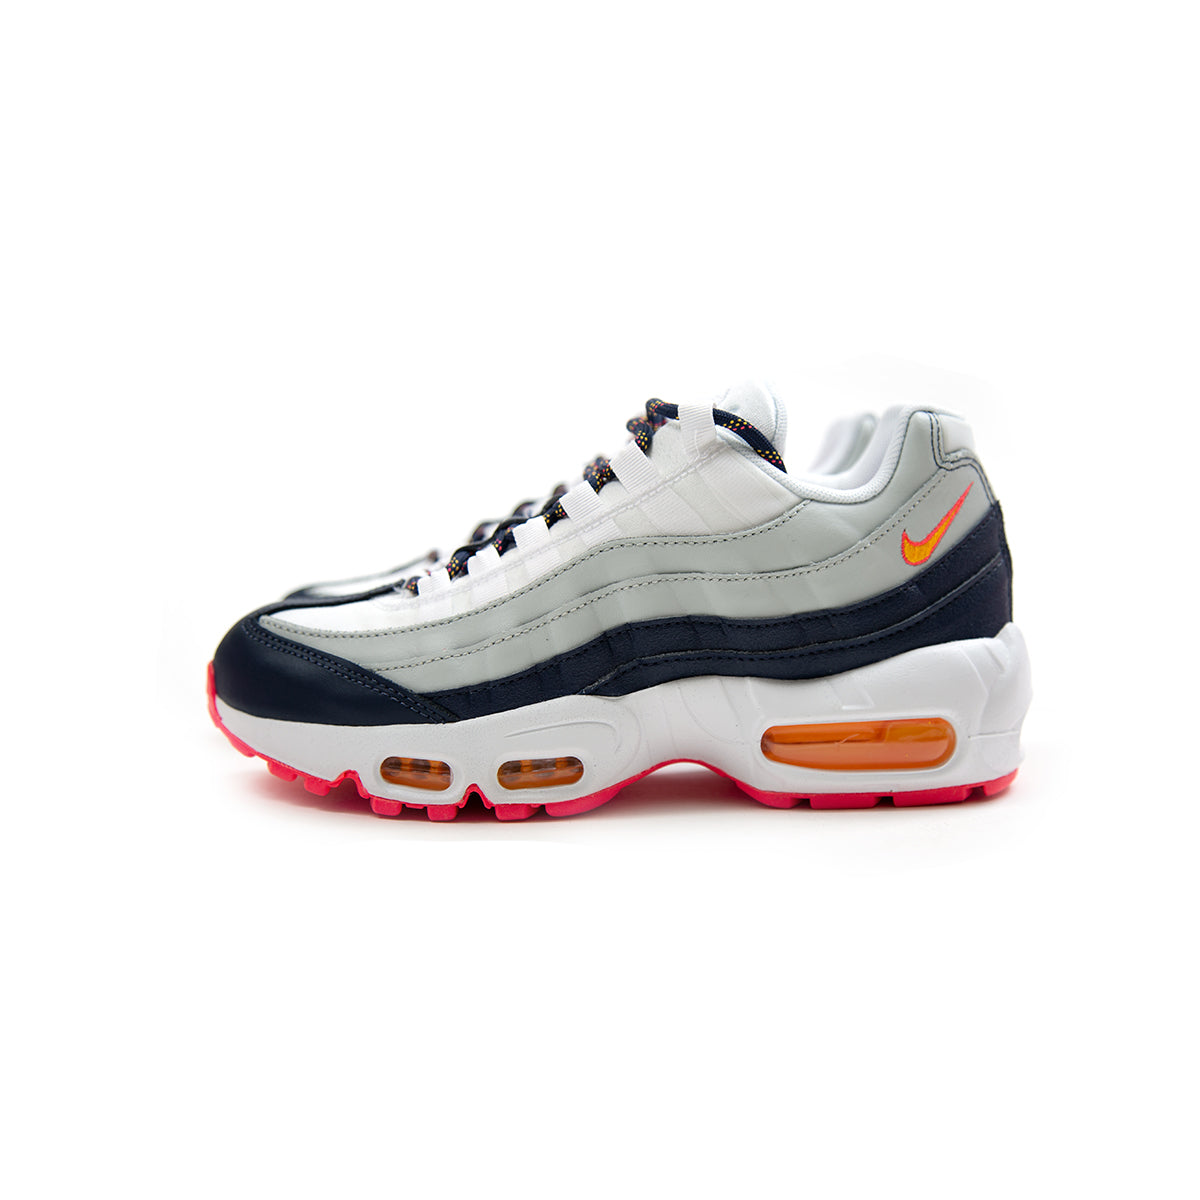 0b52b924e2 ConceptsIntl | Nike Women's Air Max 95 (Midnight Navy/Laser Orange-Pure  Platinum)